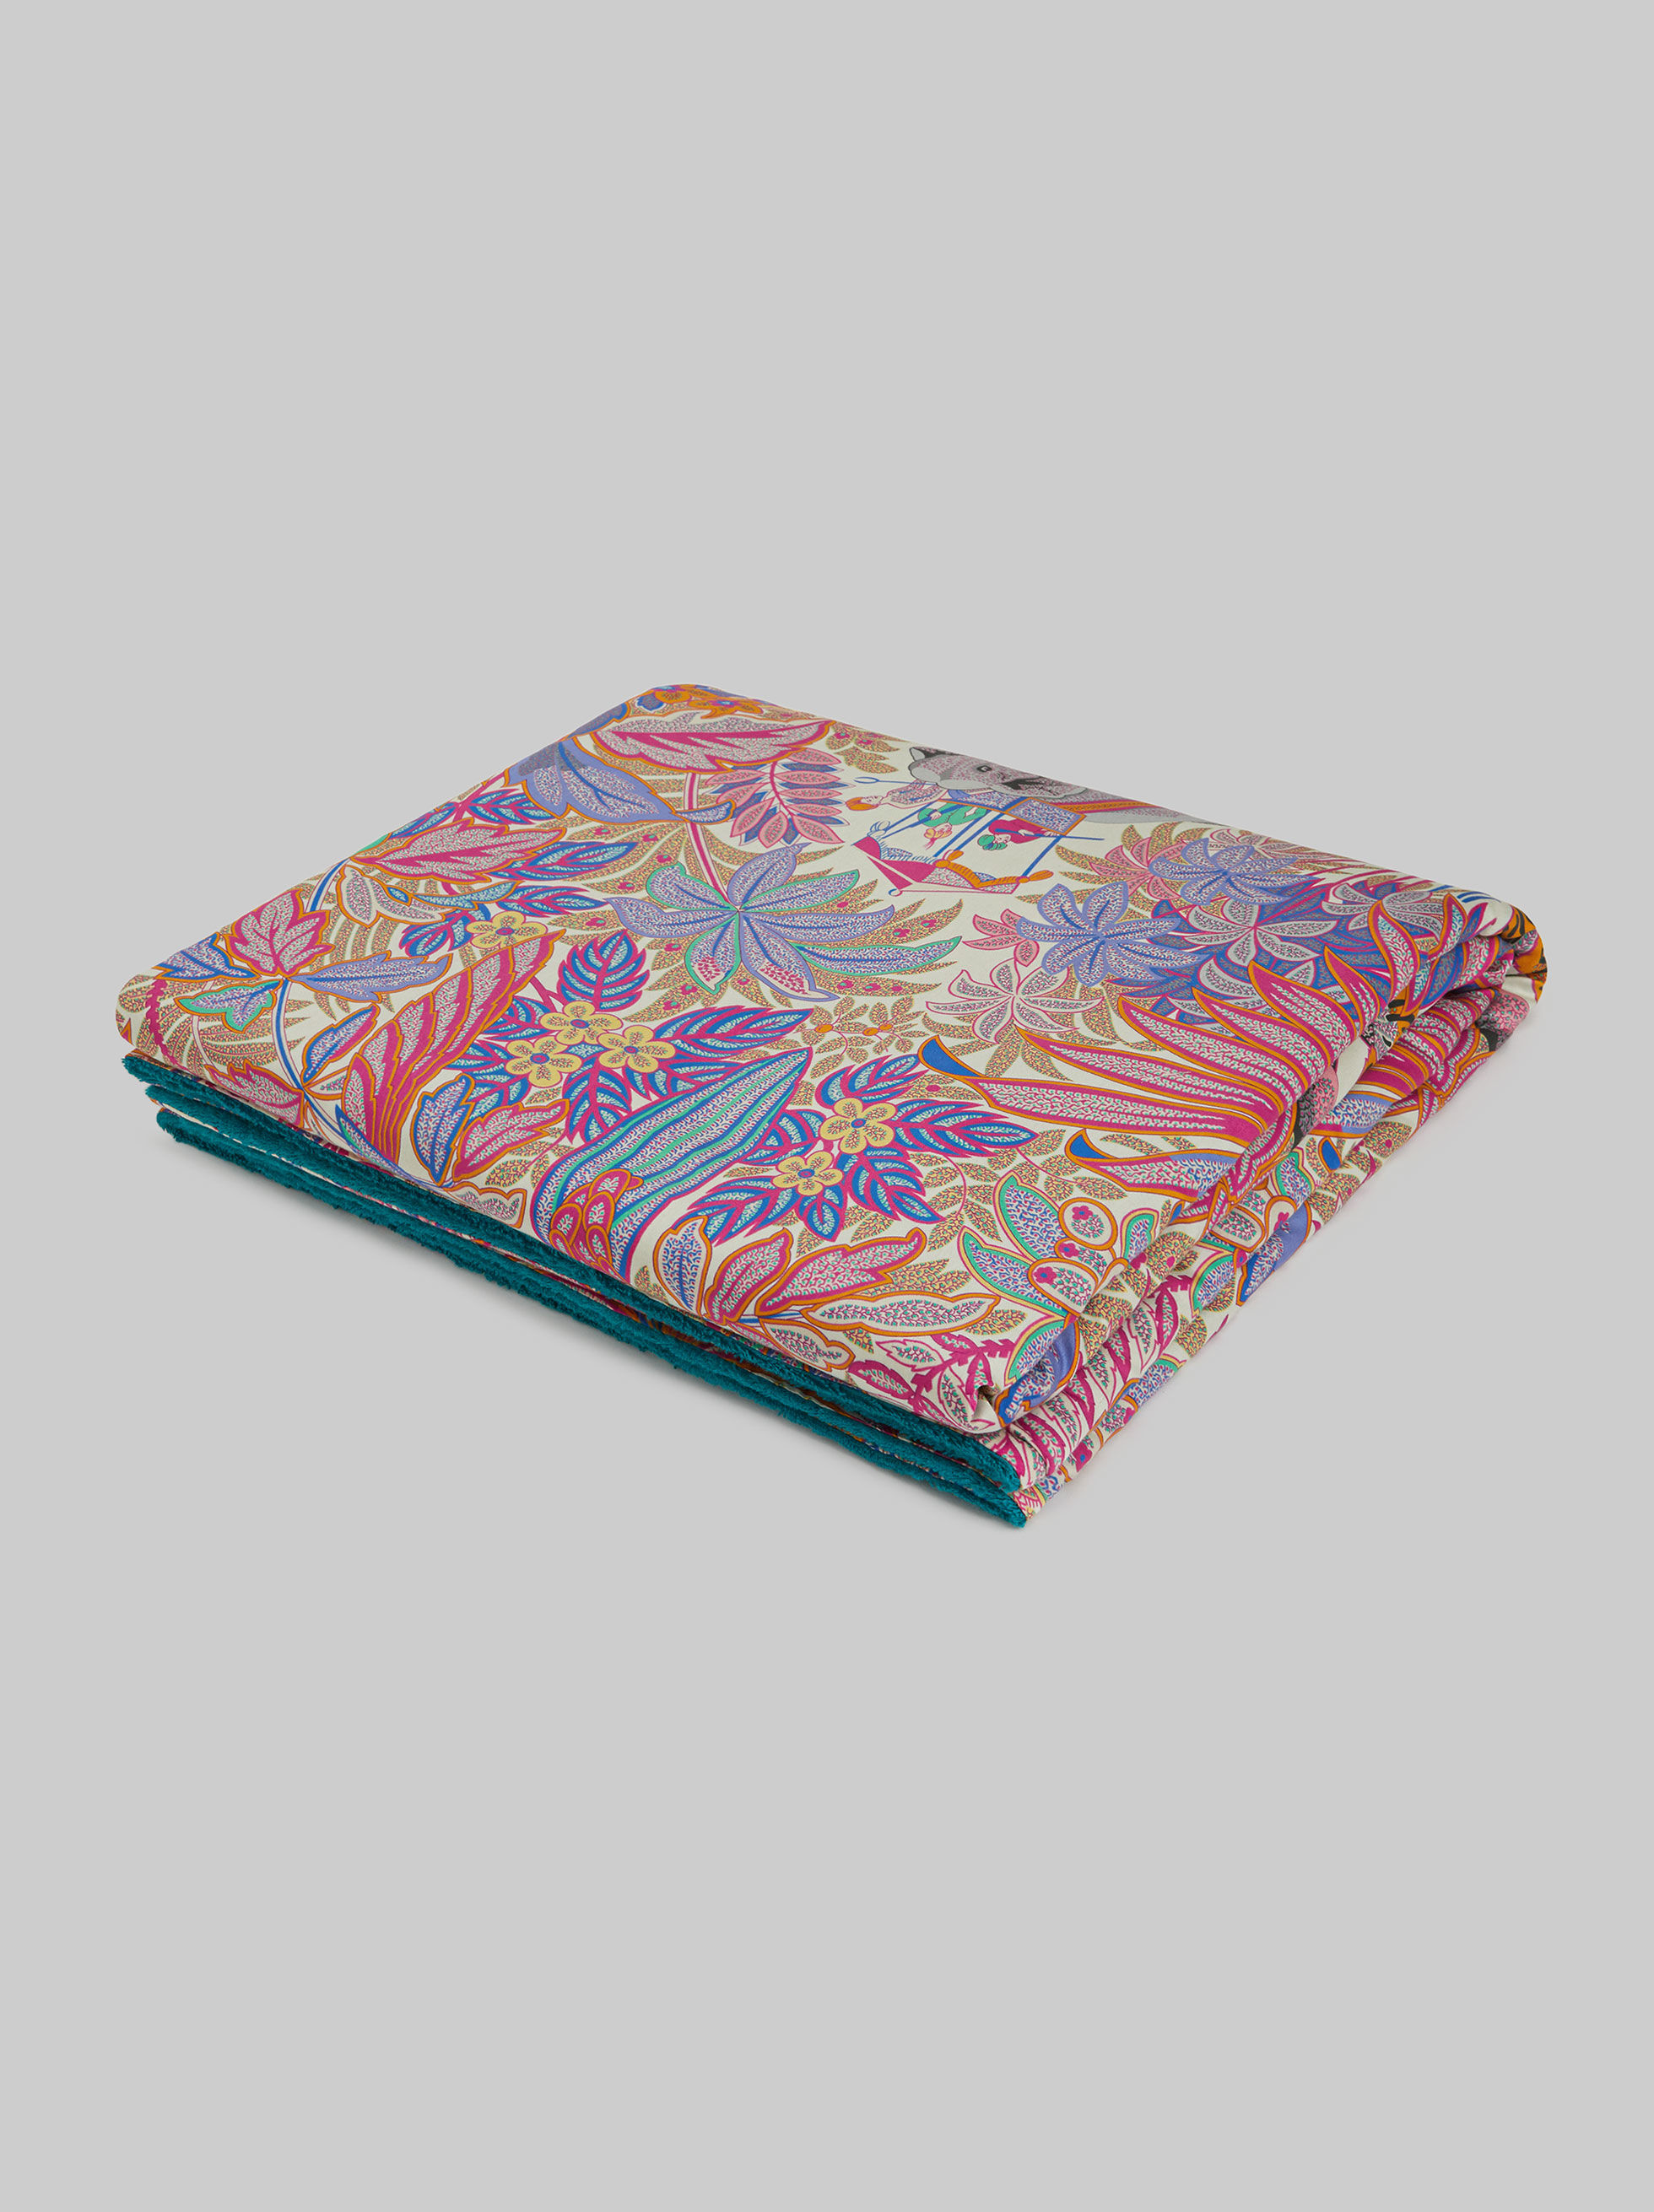 ORIENTAL PATTERN COTTON BEACH TOWEL